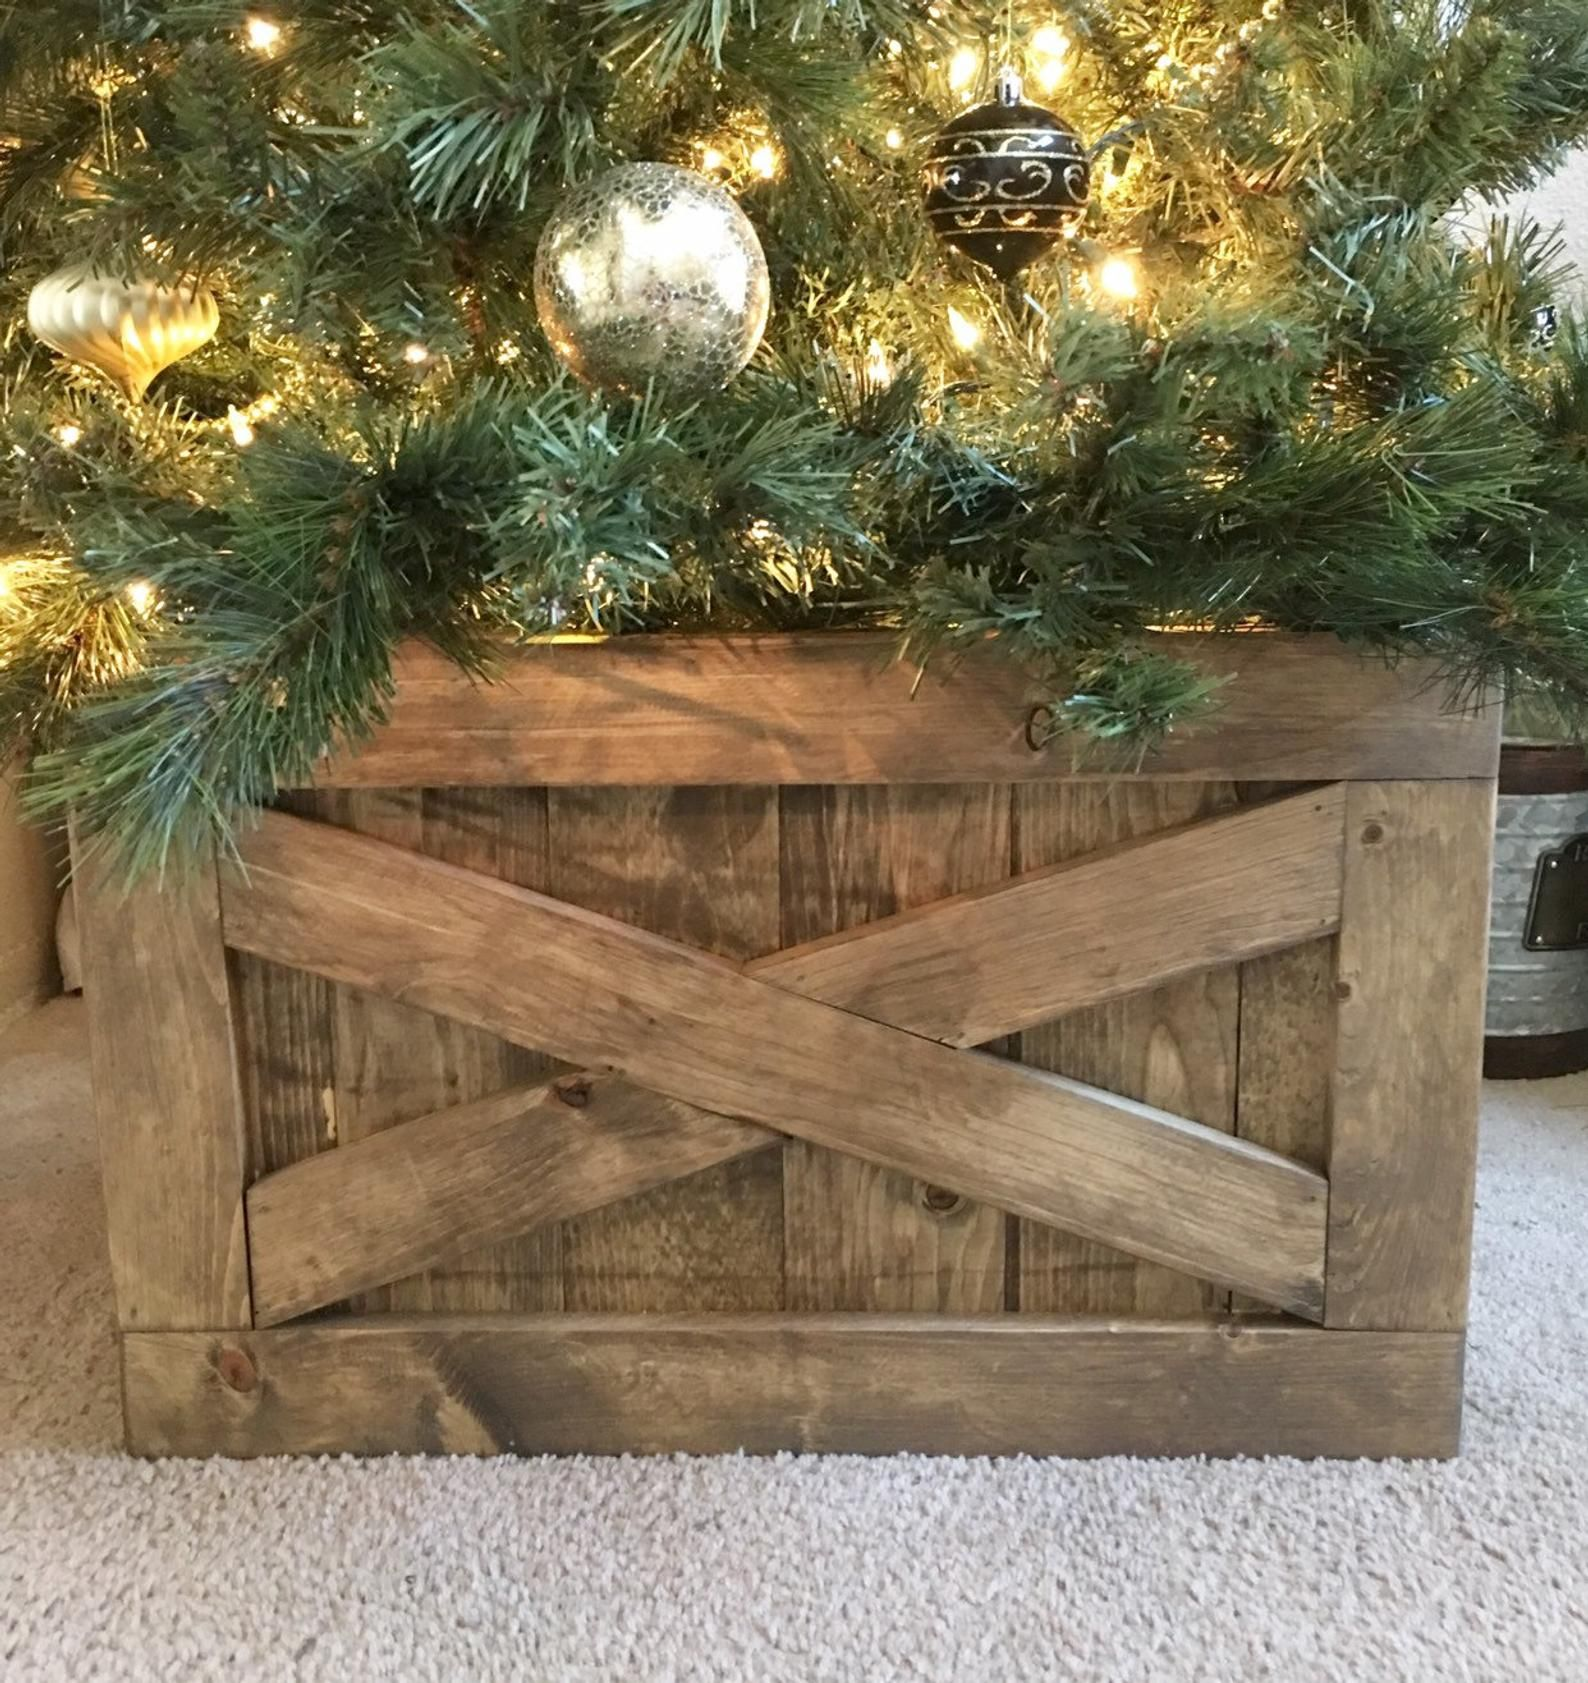 Christmas Tree Box Tree Skirt Alternative Wood Tree Box Etsy Christmas Tree Box Christmas Tree Box Stand Christmas Tree Base